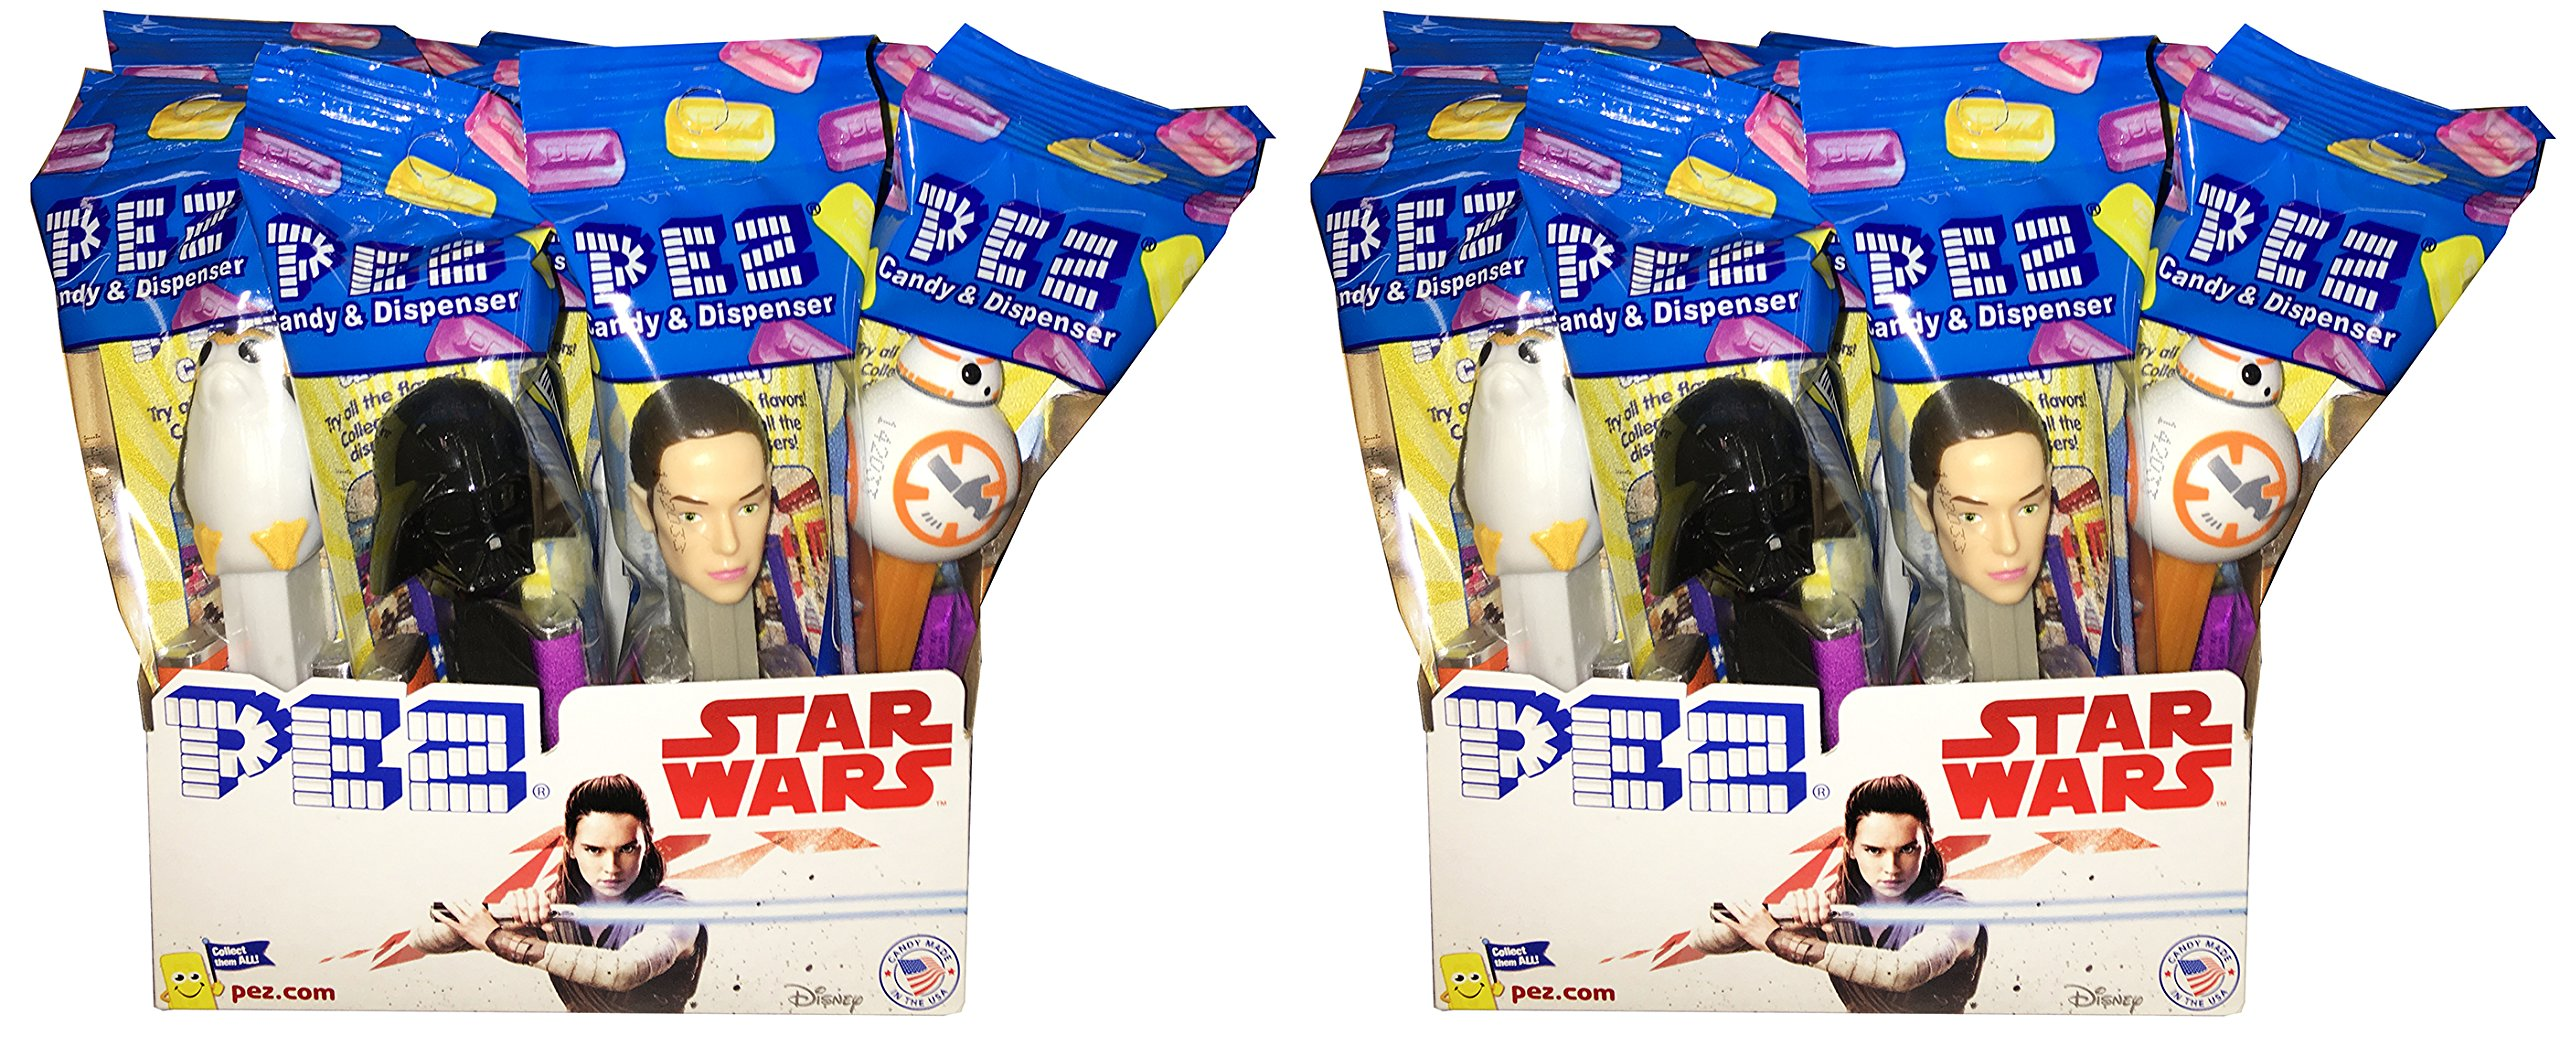 Star Wars PEZ Candy Dispensers - Pack of 24